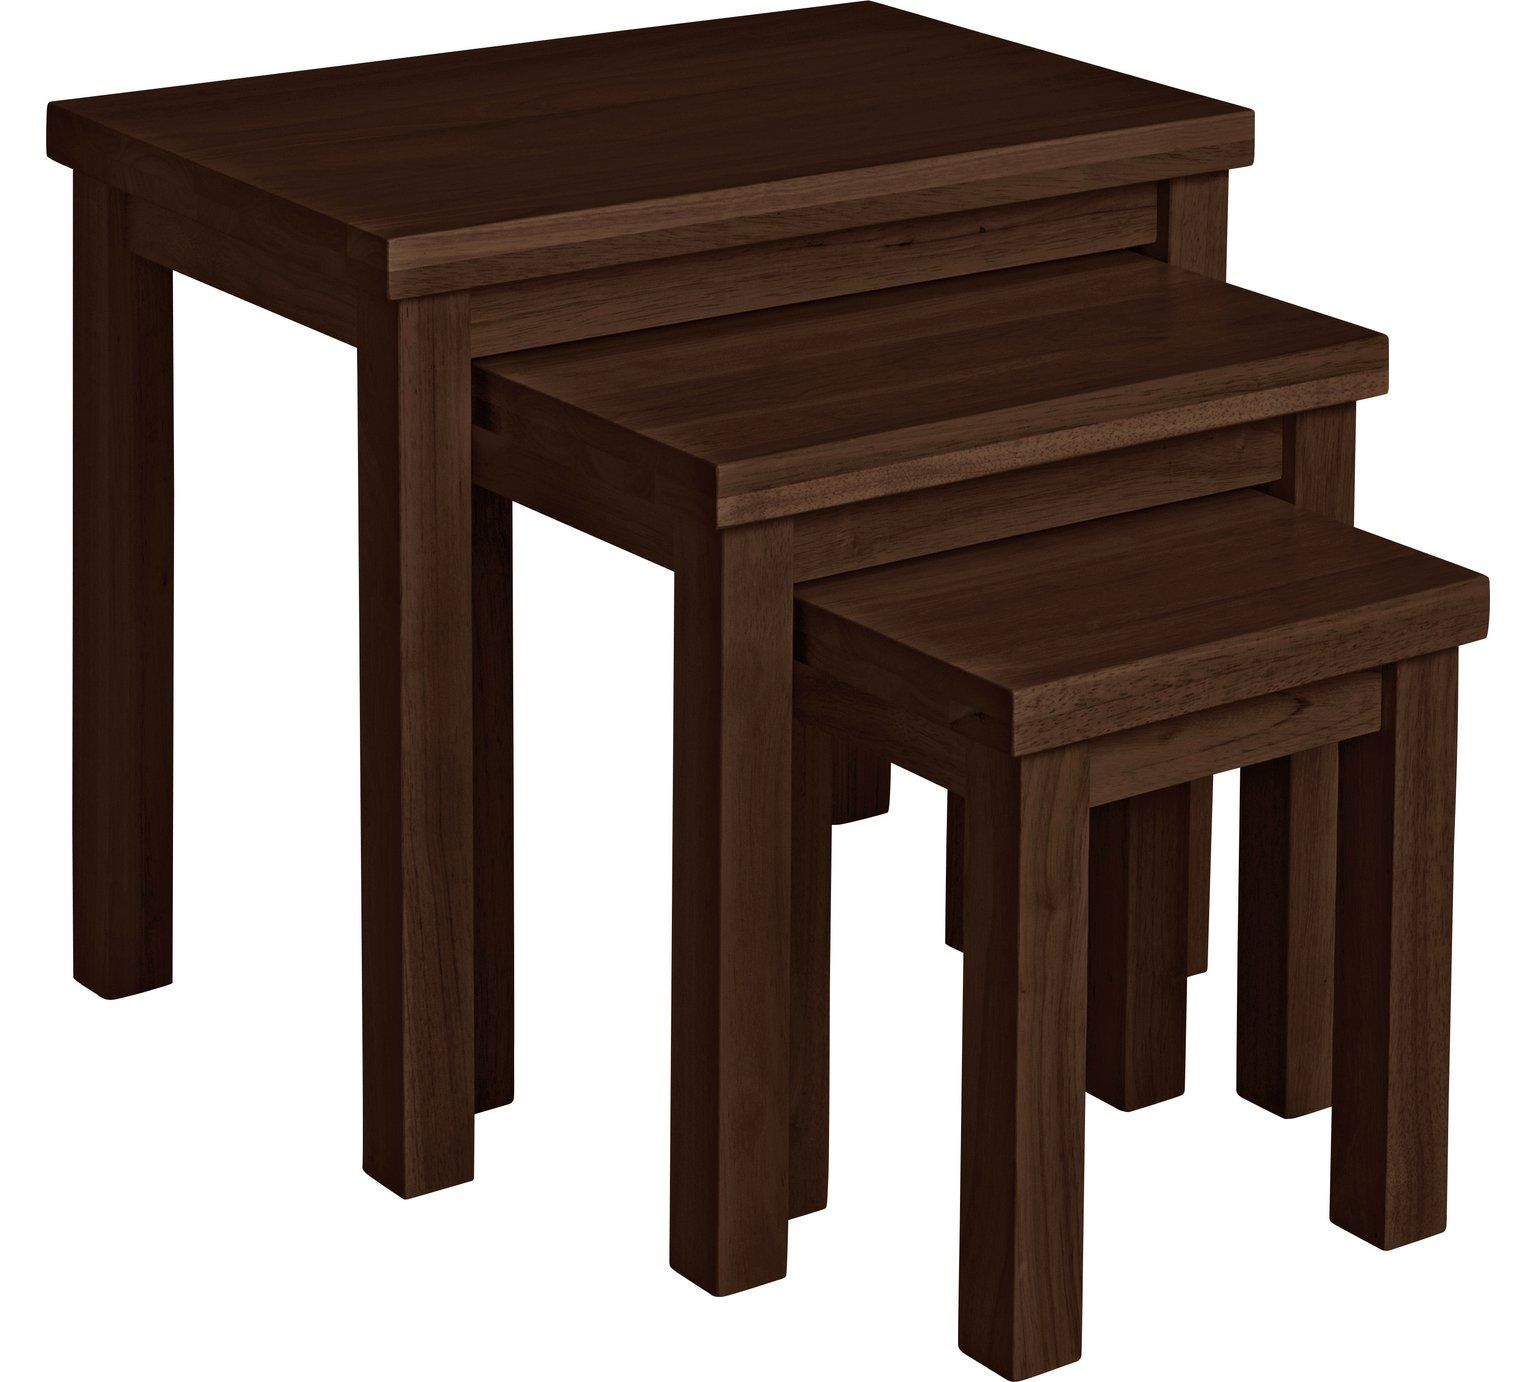 Home Gloucester Nest Of 3 Solid Wood Tables Walnut Effect At Argos Co Uk Visit To Online For Coffee Side And